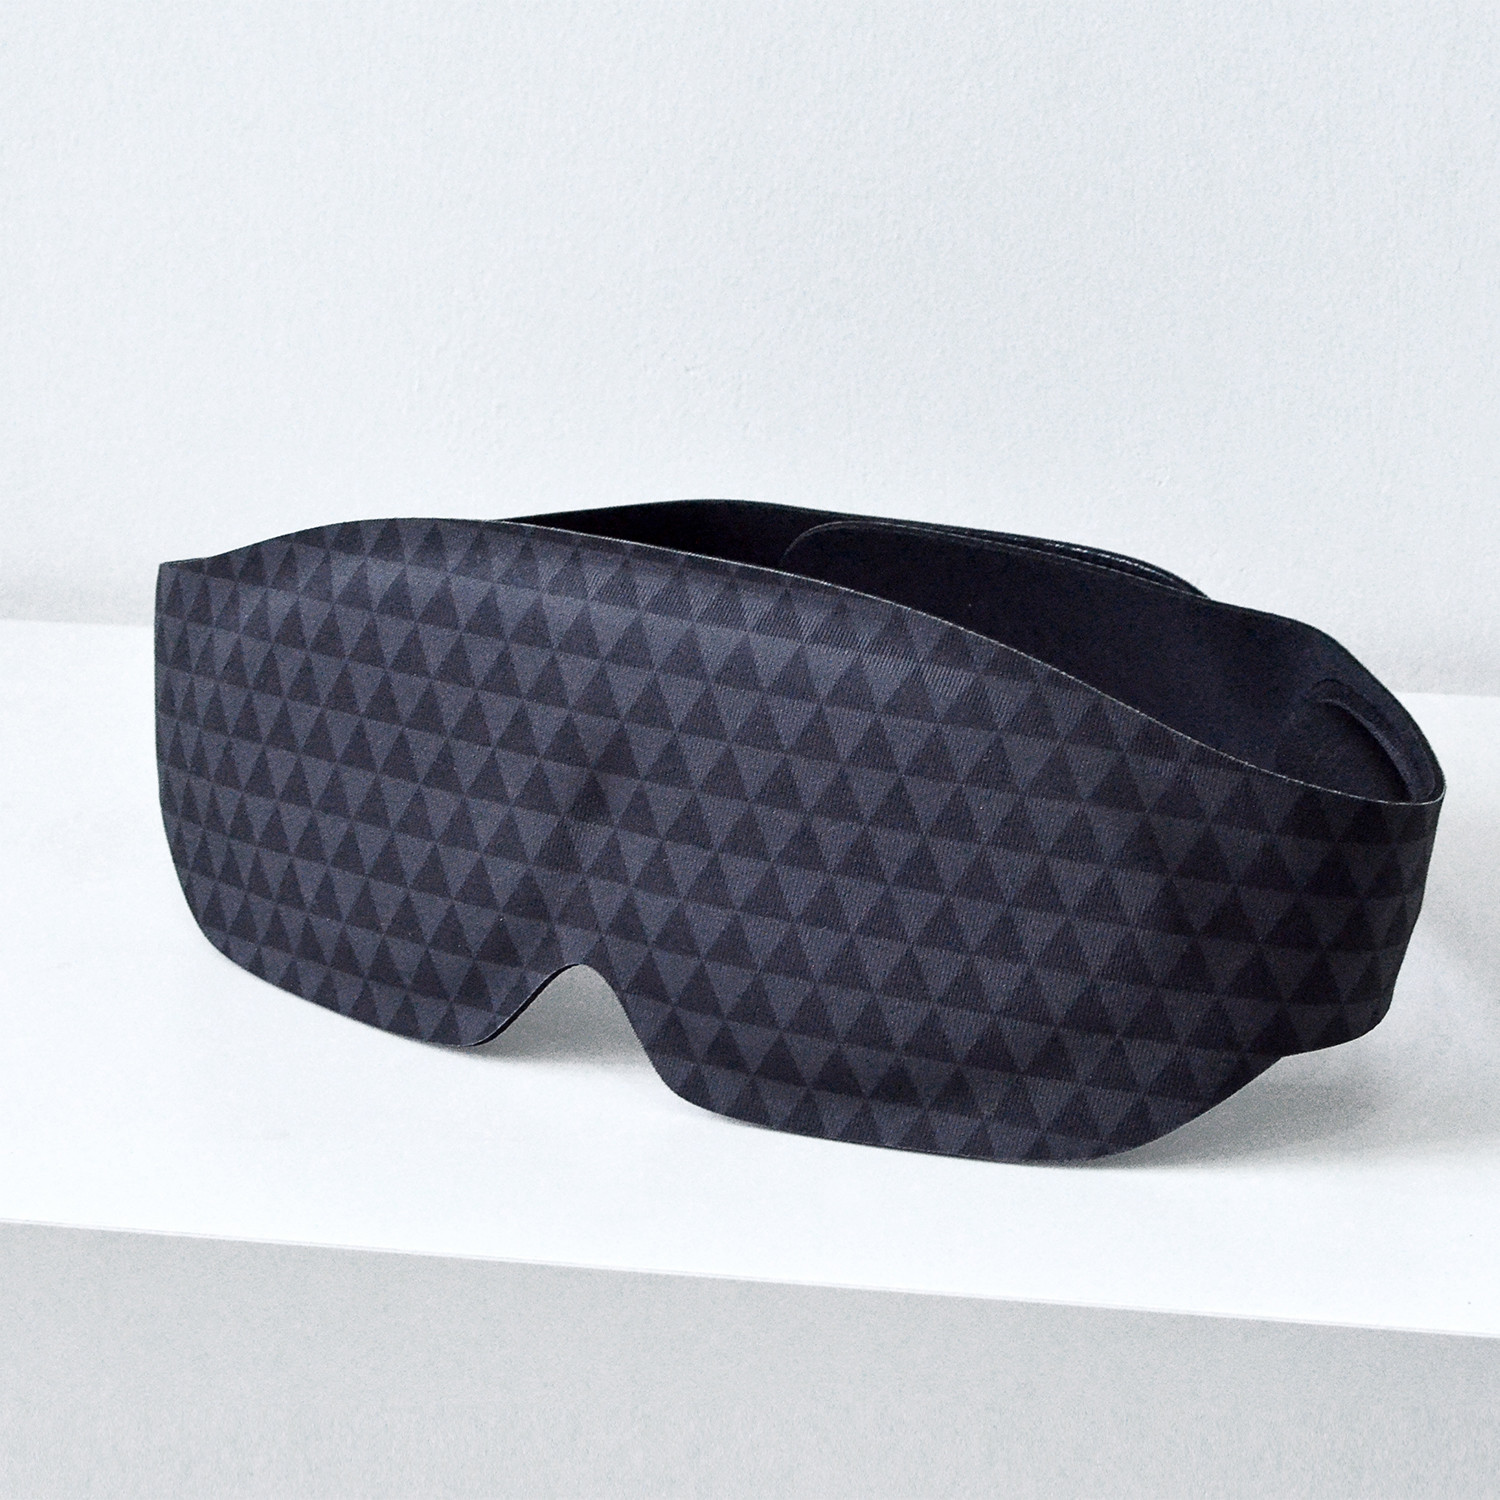 Image of Sleepace Graphene Heating Eye Mask - Black